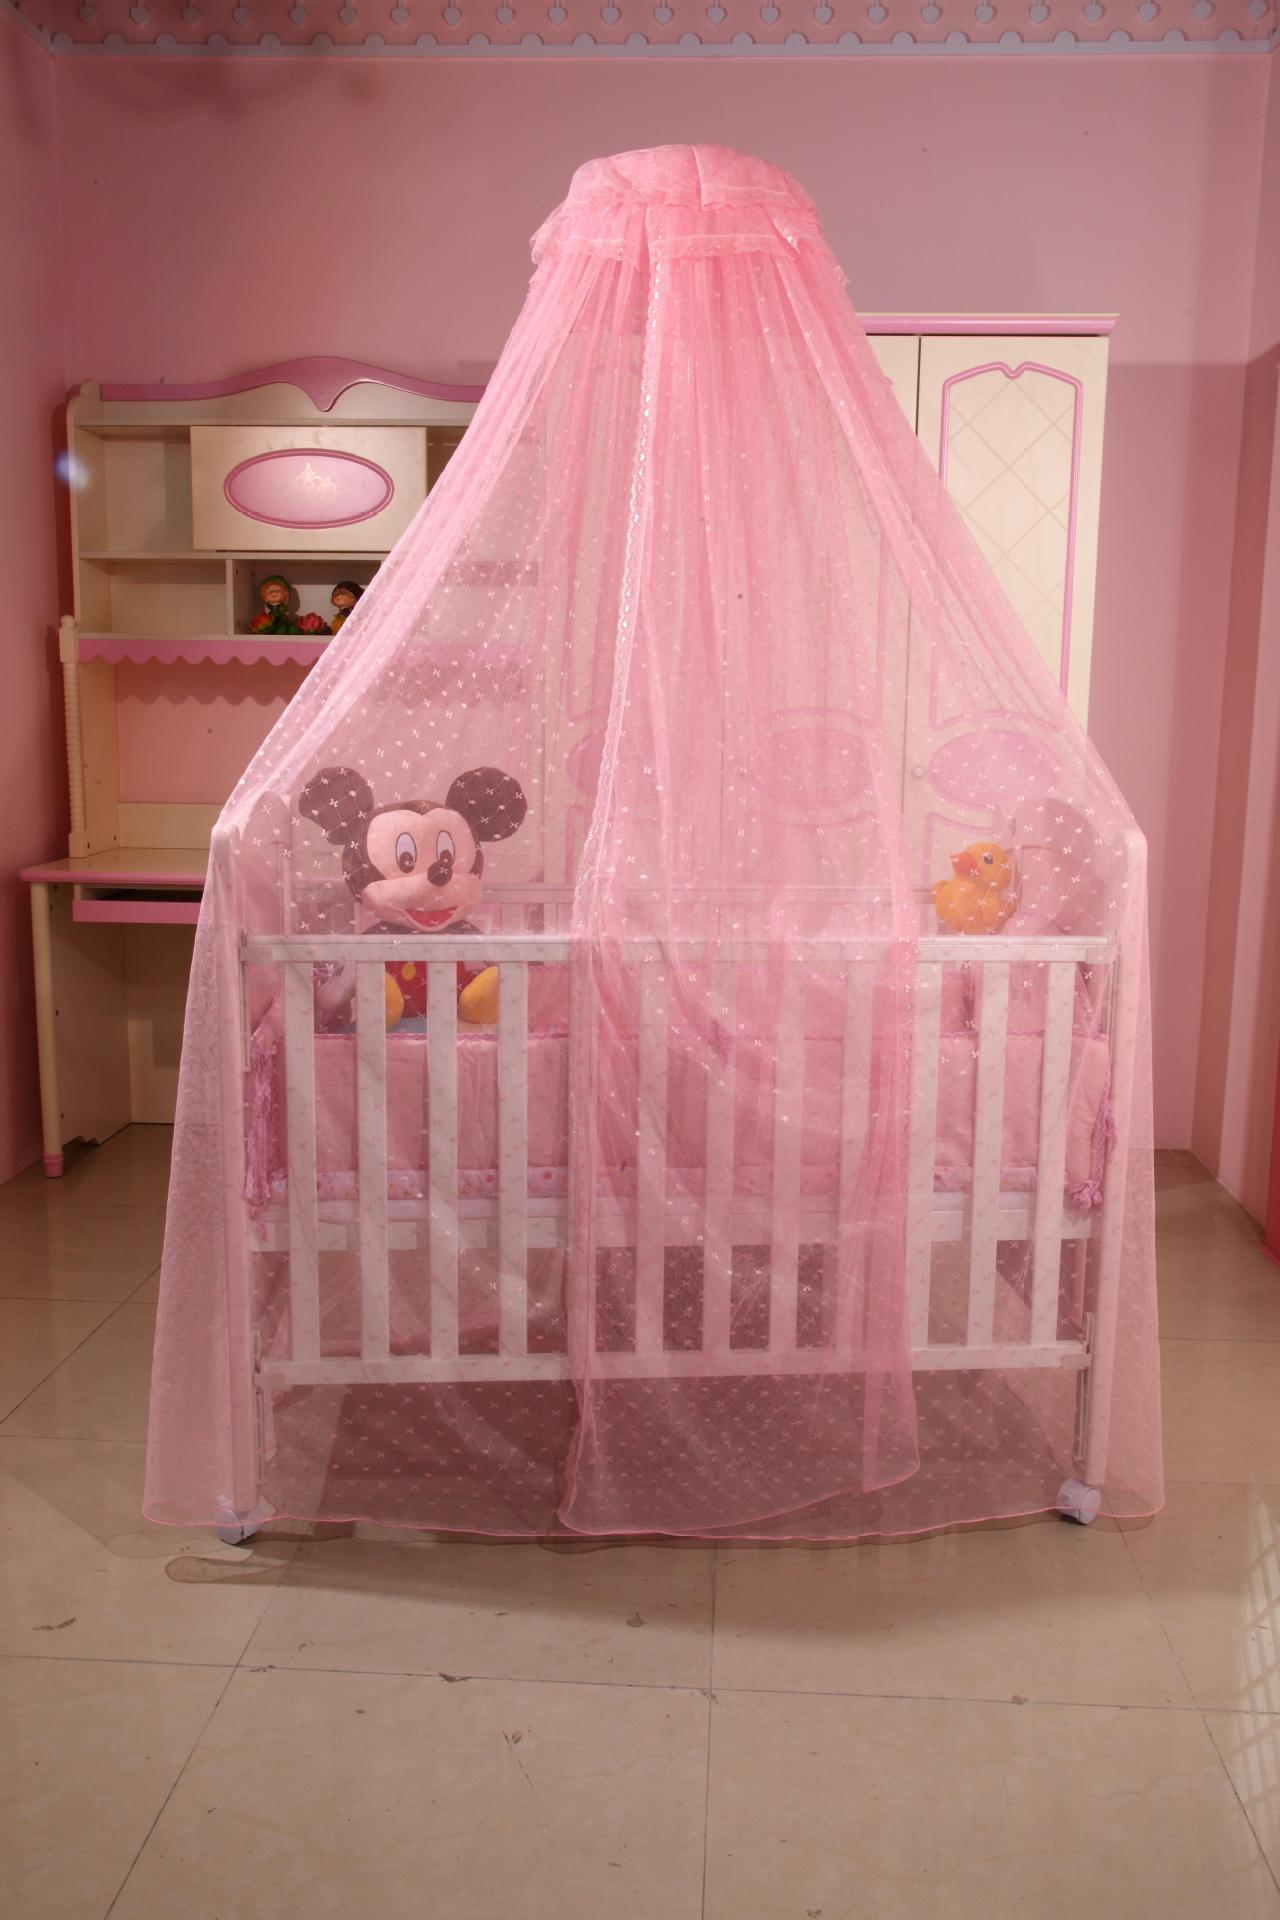 Baby bed pictures - Baby Crib Net Canopy Is A Very Helpful Companion For Parents In Summer A Light Baby Cot With Net Can Help Protect Children From The Strong Sunshine And